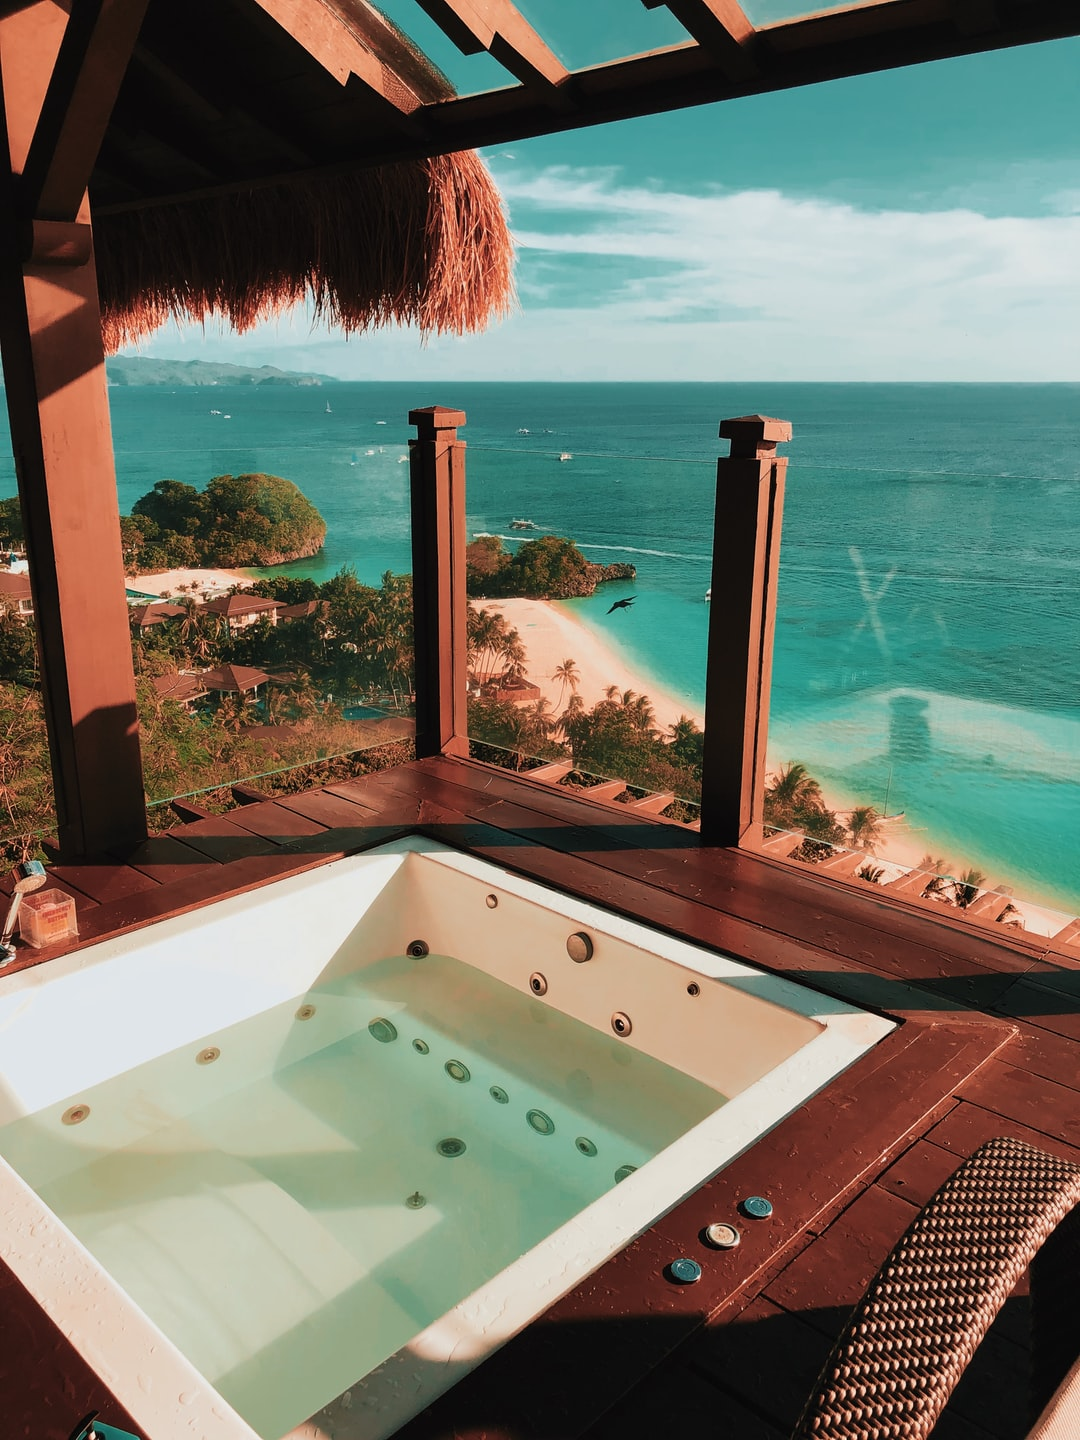 5 Tips for Installing Indoor Hot Tubs for New Homeowners